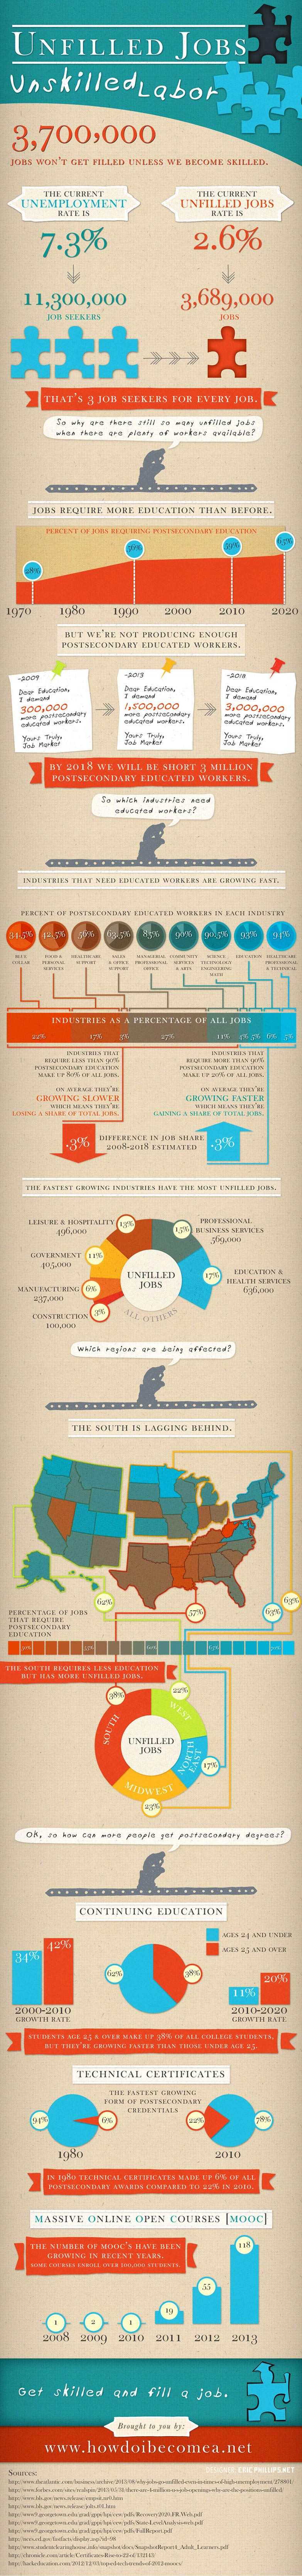 Skilled Worker Demand-Infographic